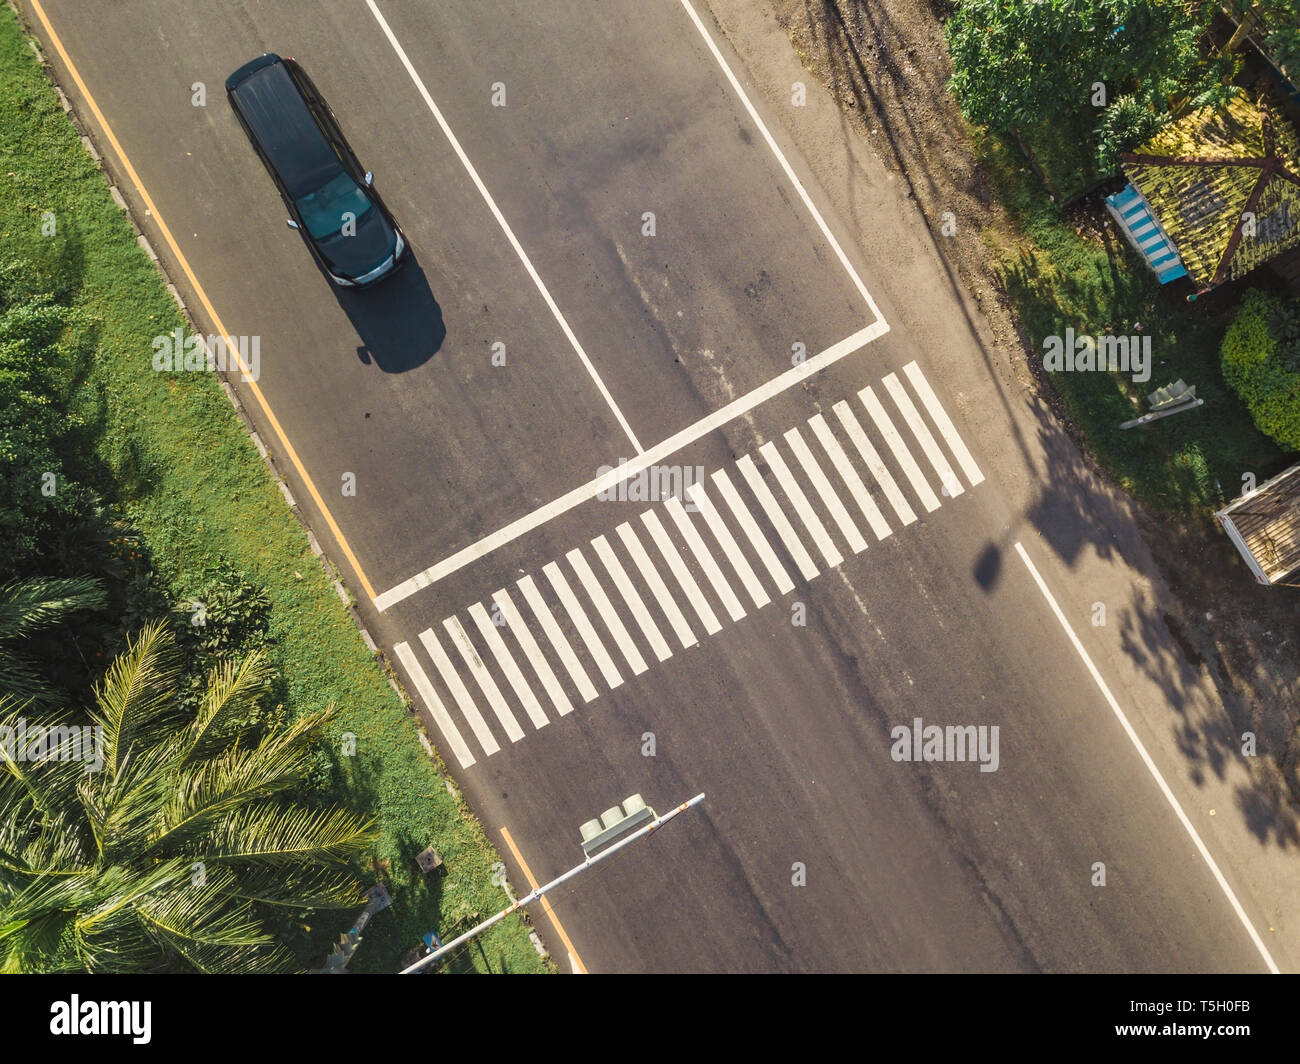 Indonesia, Bali, Sanur, Aerial view of car at zebra crossing on the road Stock Photo